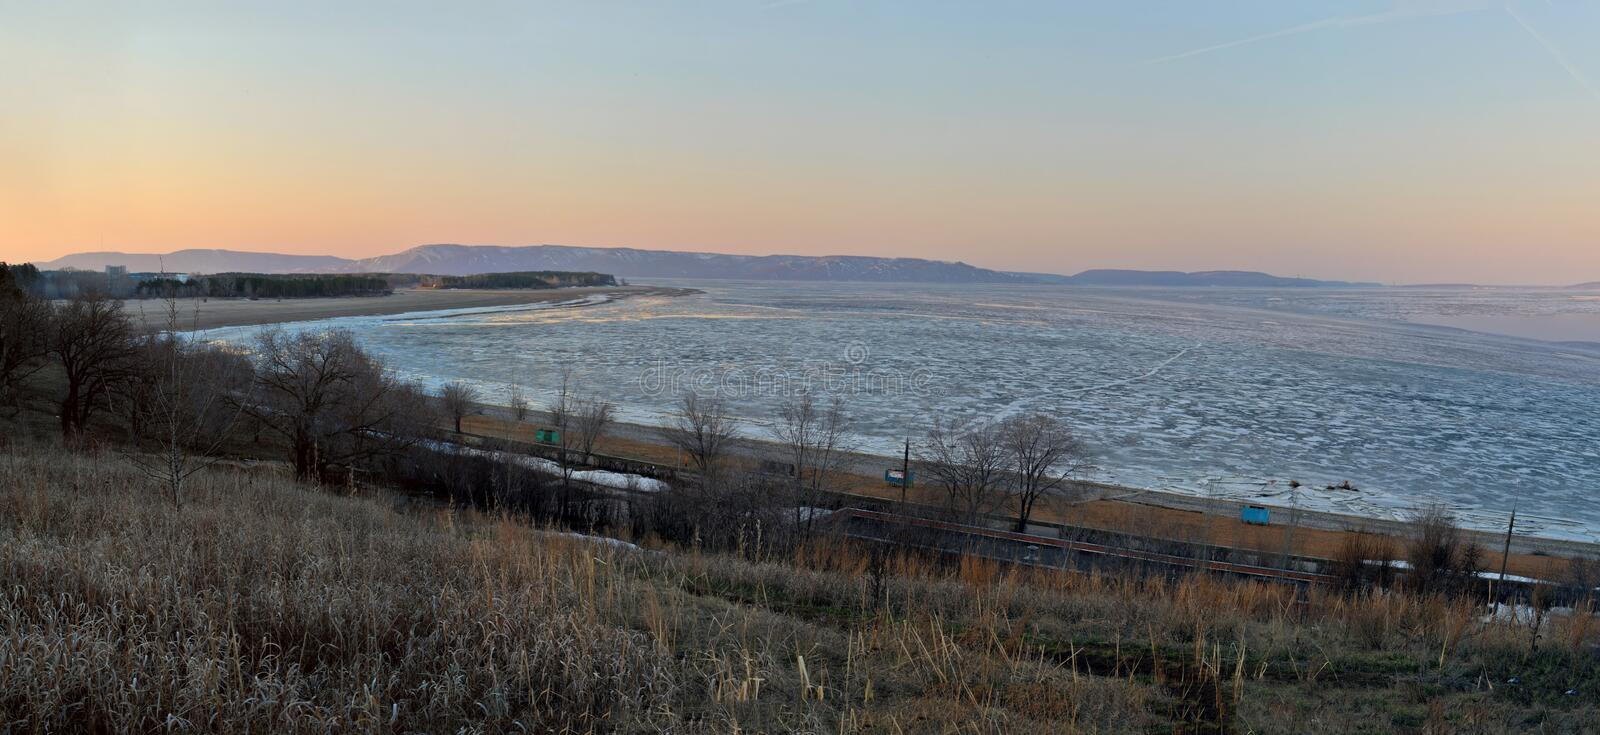 Spring view of the Volga river bank and Zhiguli mountains at sunrise. Shot made on the embankment of the city of Togliatti, Russia stock images